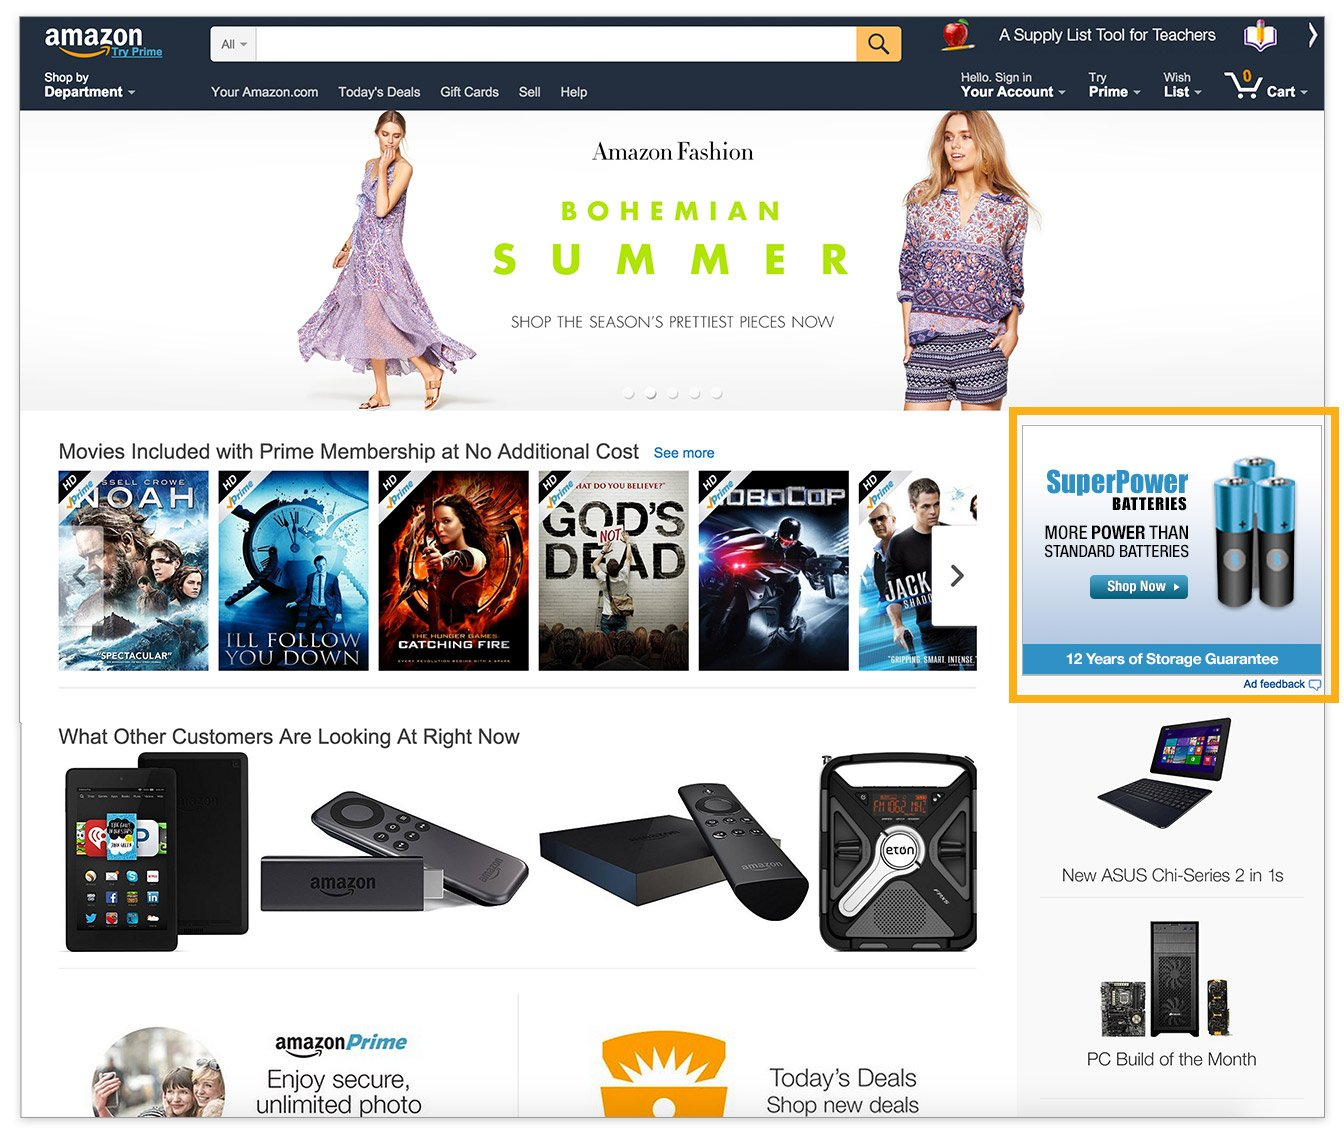 Medium Rectangle on the Amazon home page, 300x250